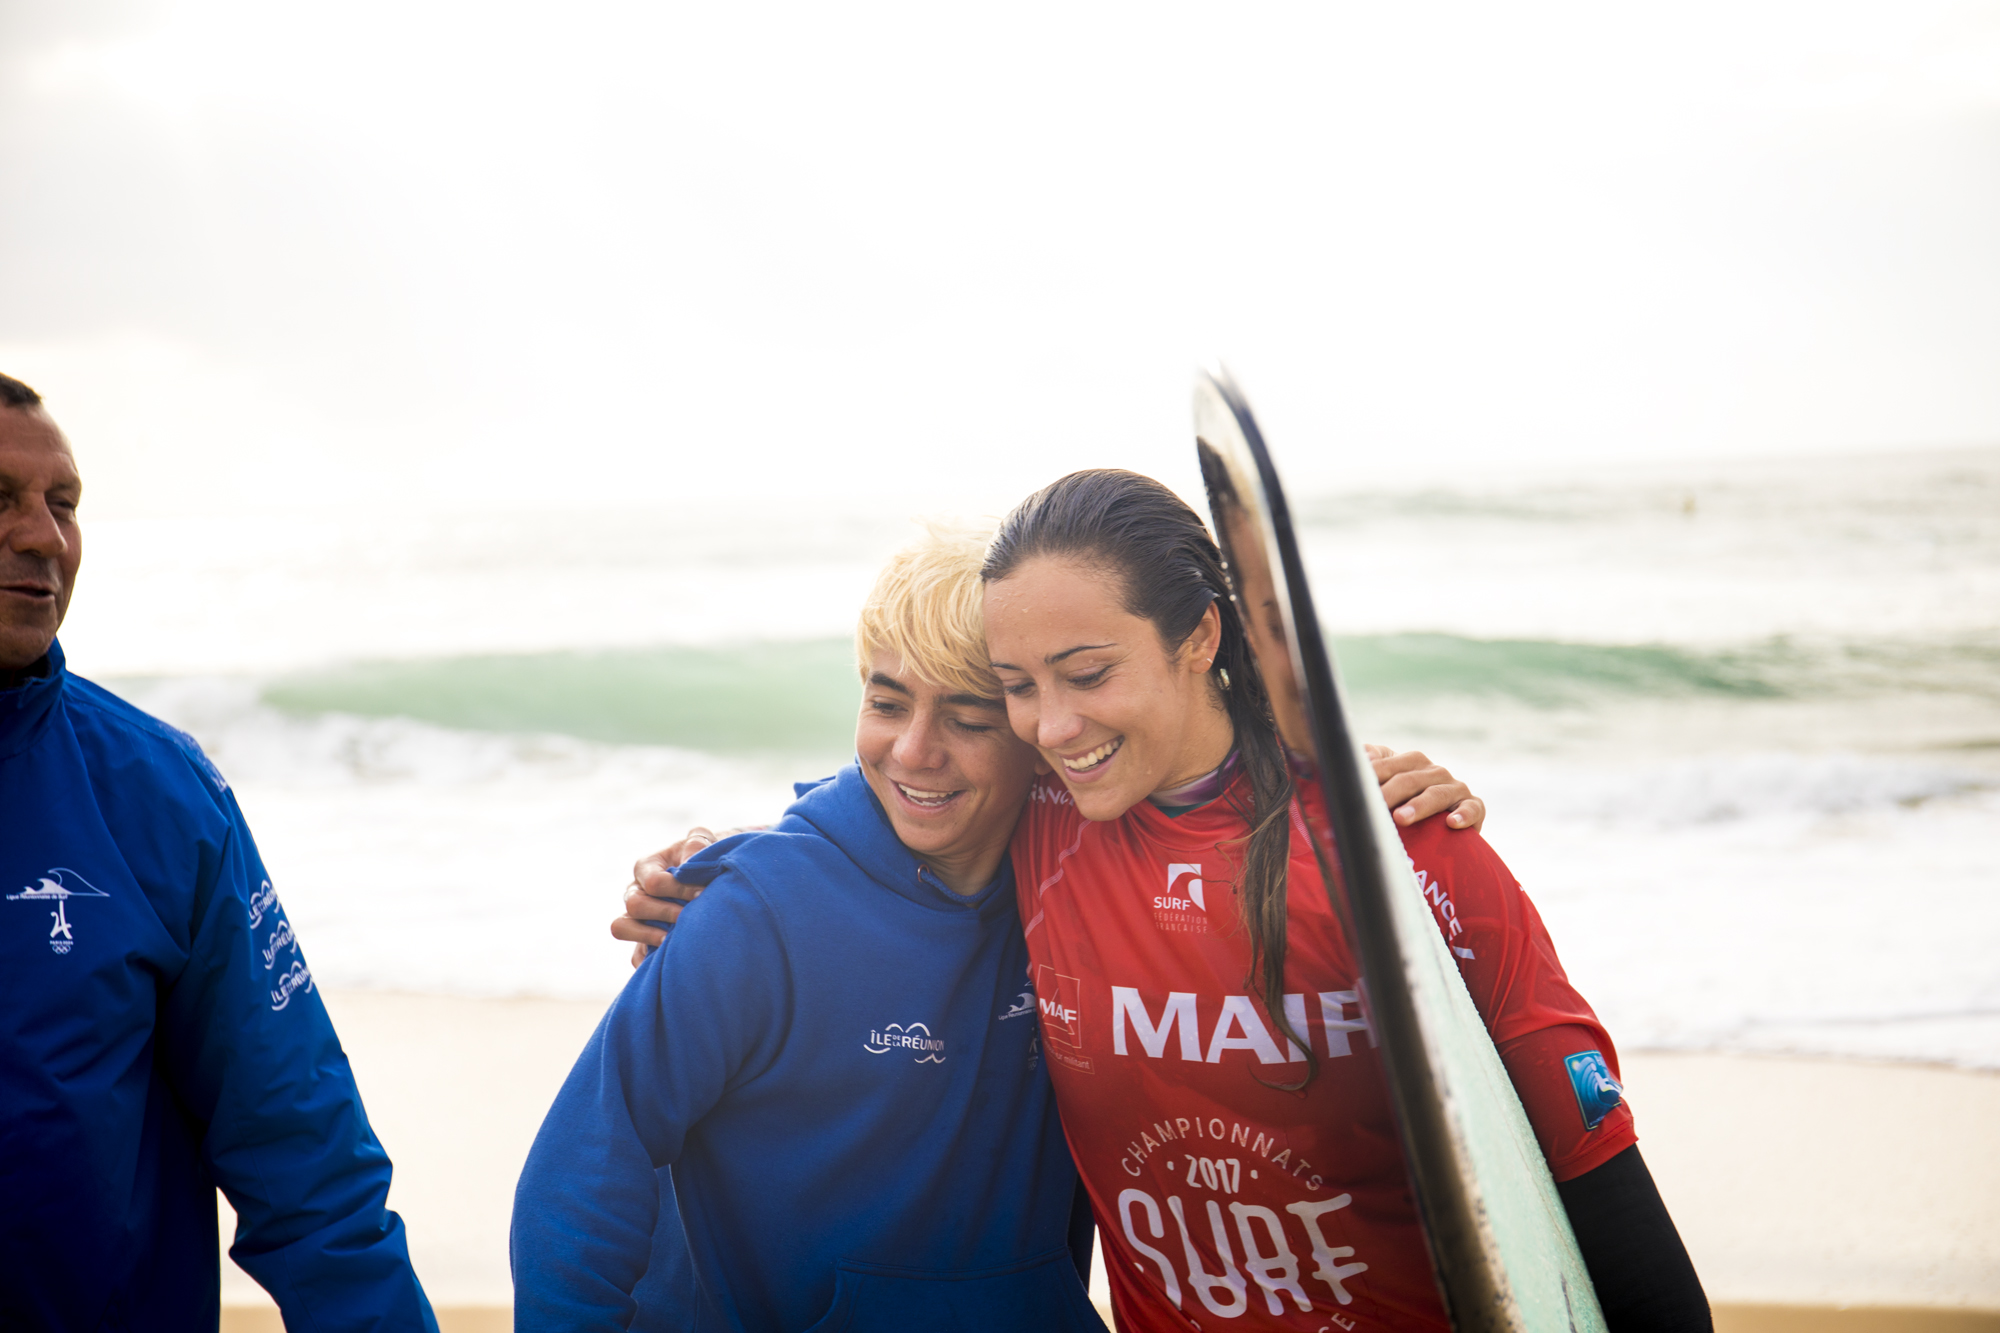 justine-mauvin-french-surfing-championships-2017-hossegor-we-creative-guillaume-arrieta